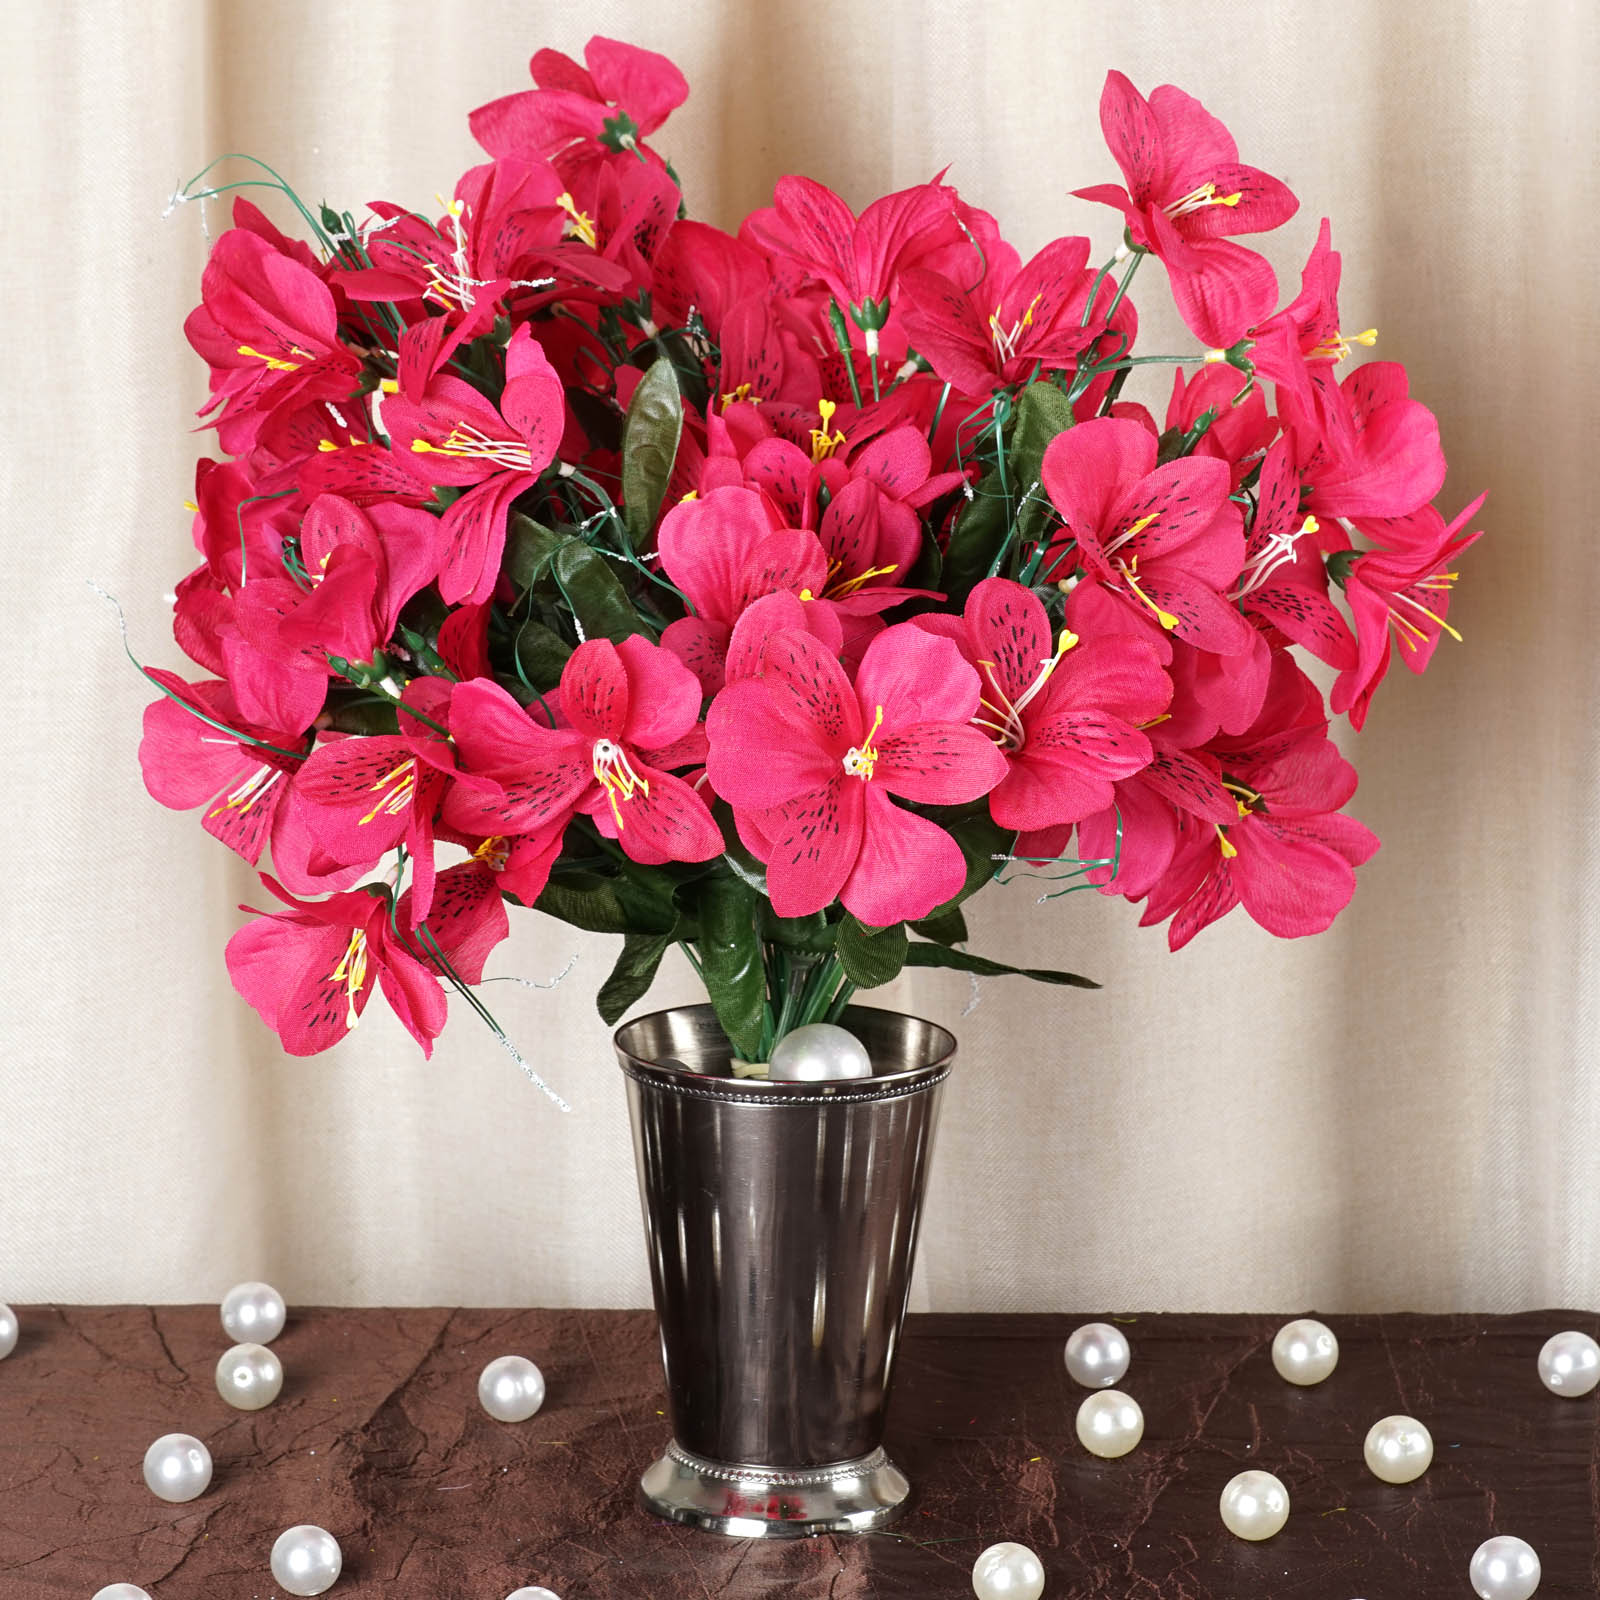 Remarkable Cheap Artificial Flowers for Weddings s Inspirations – Dievoon